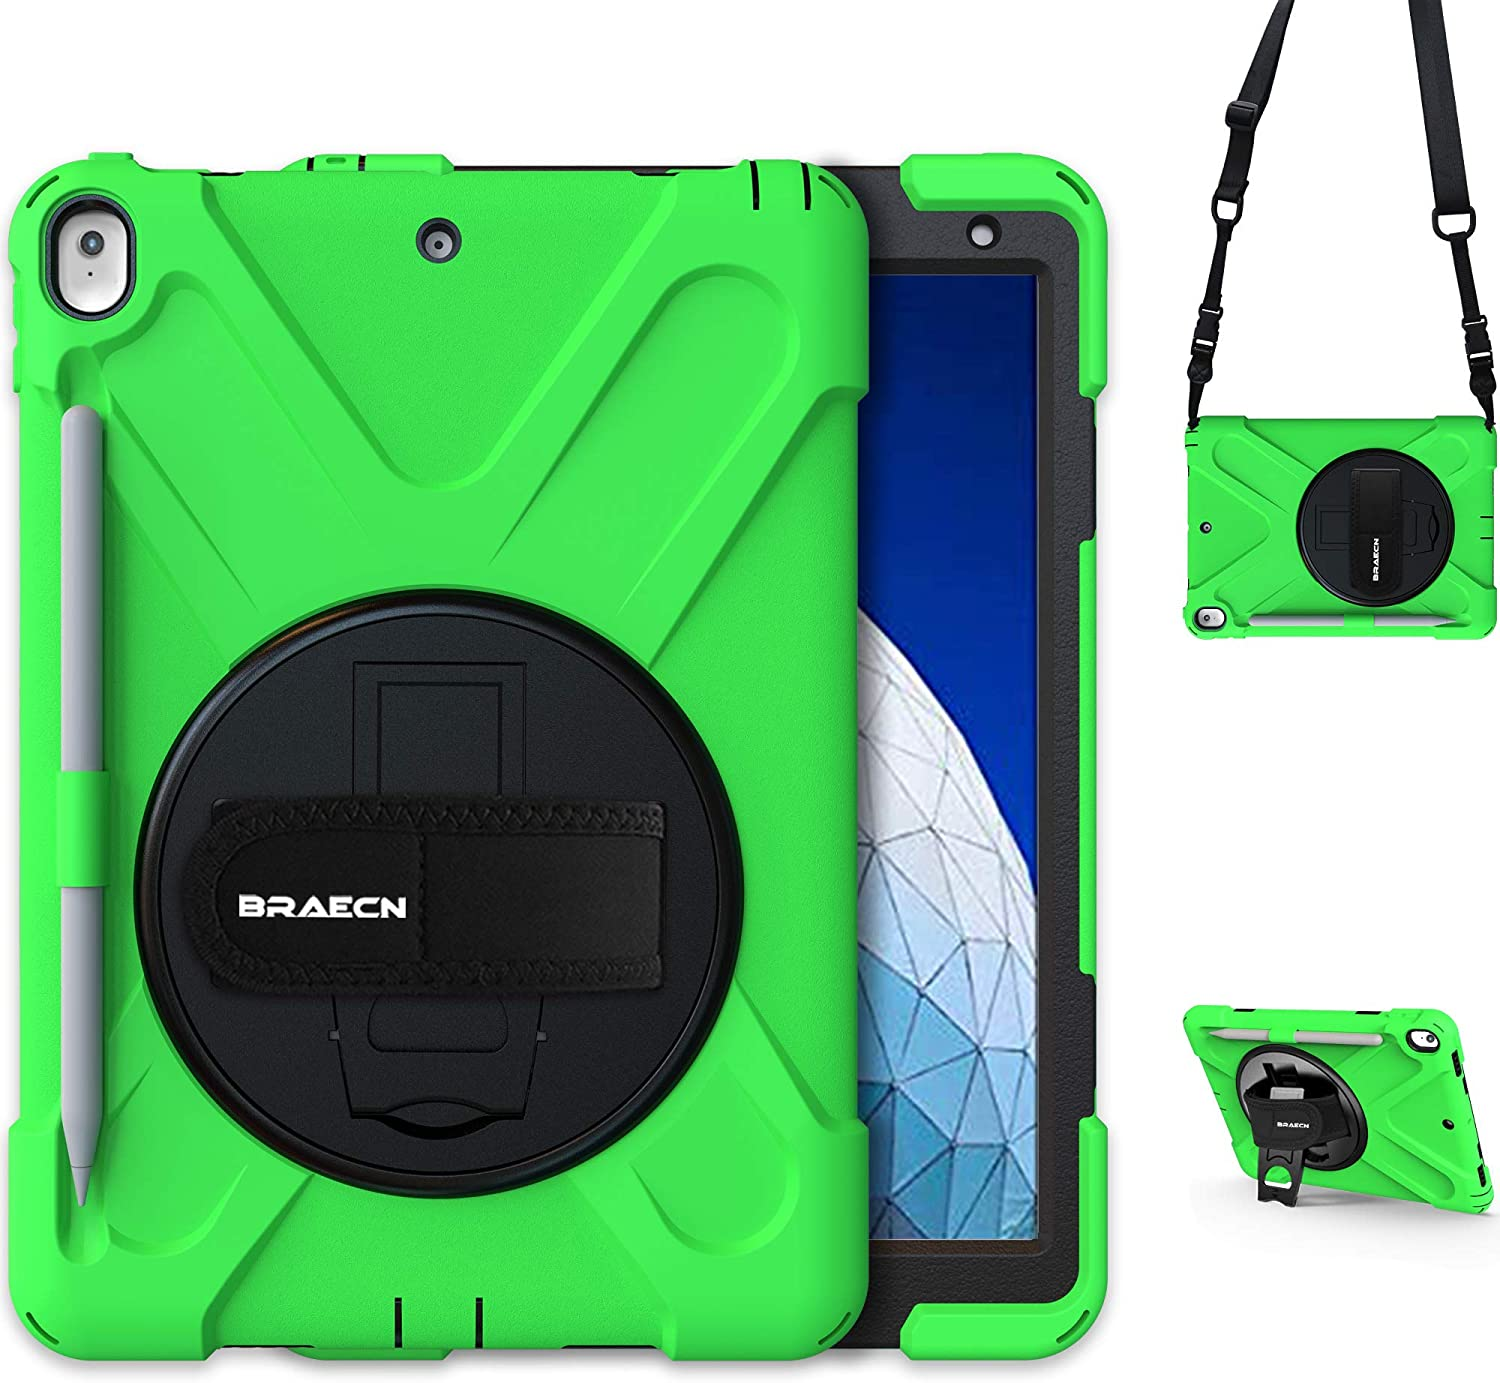 BRAECN Case for iPad Air 3rd Gen 10.5'' 2019,[Pencil Holder]+[Carrying Shoulder Strap]+[Hand Strap]+[Kickstand] Heavy Duty Dropproof Shockproof Protective Case for iPad Pro 10.5 Inch 2017 Tablet-Green